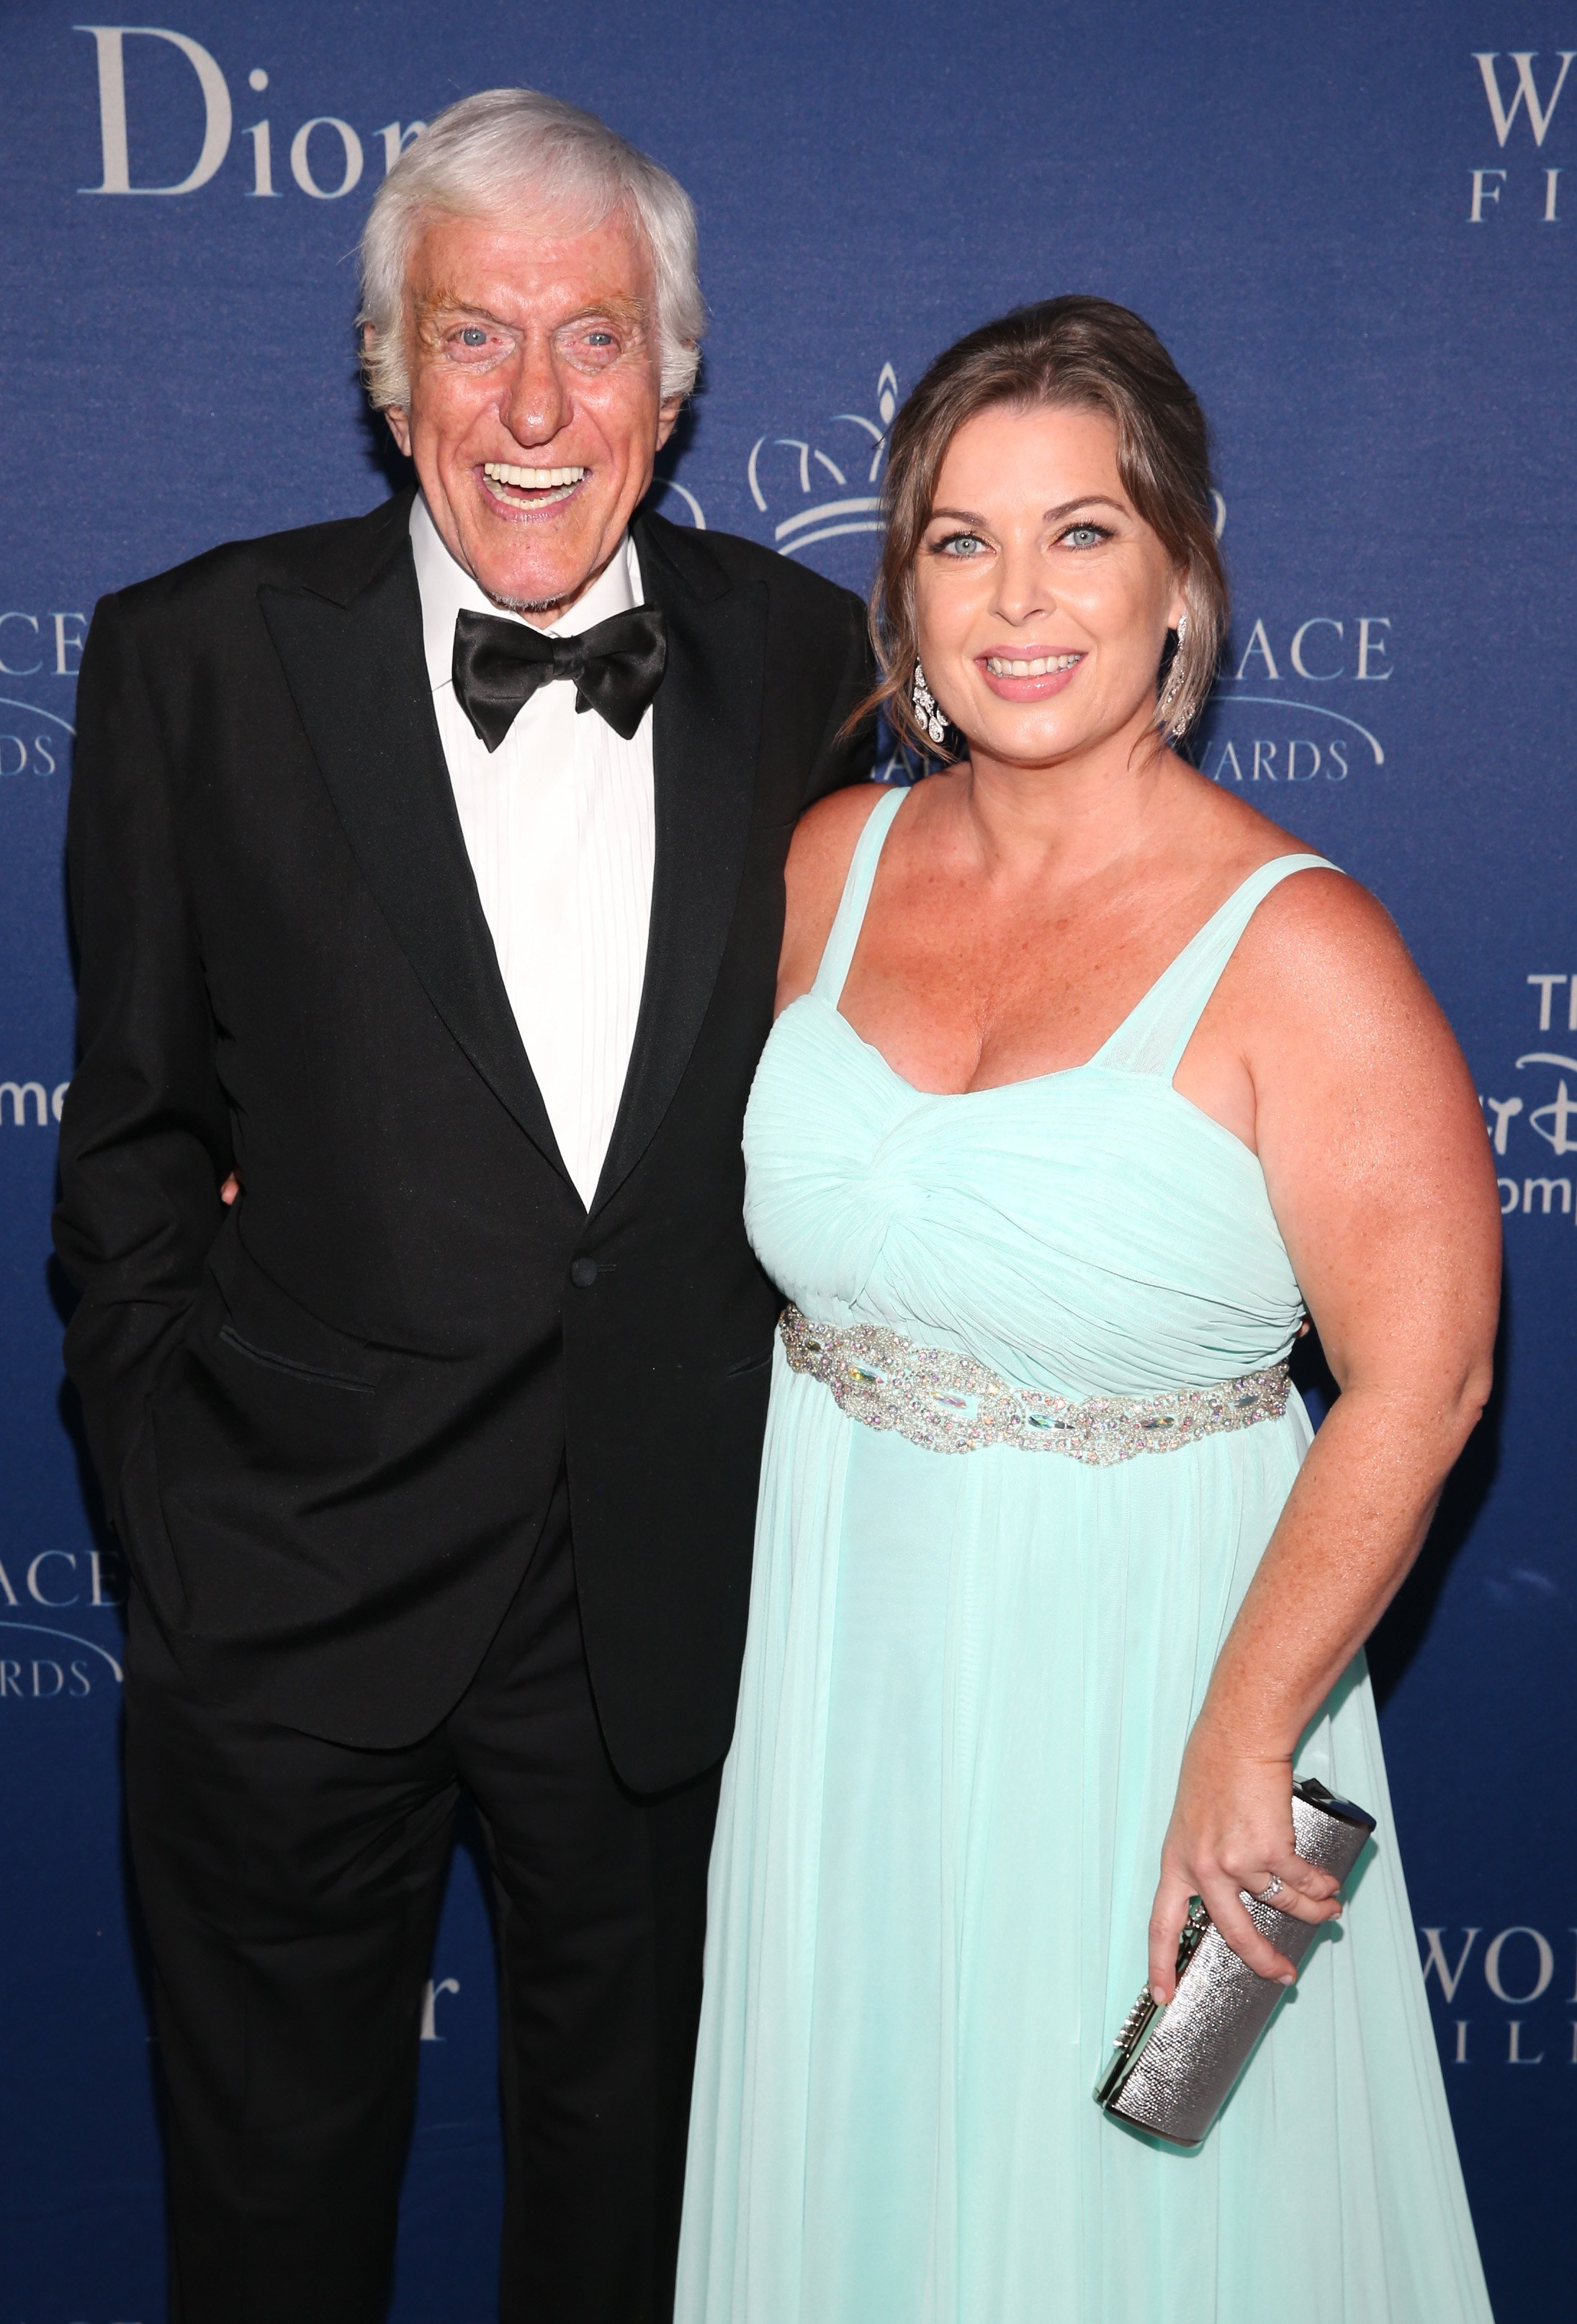 Dick Van Dyke and his wife Arlene Silver attend the Princess Grace Awards Gala in Beverly Hills, California on October 8, 2014 | Photo: Getty Images